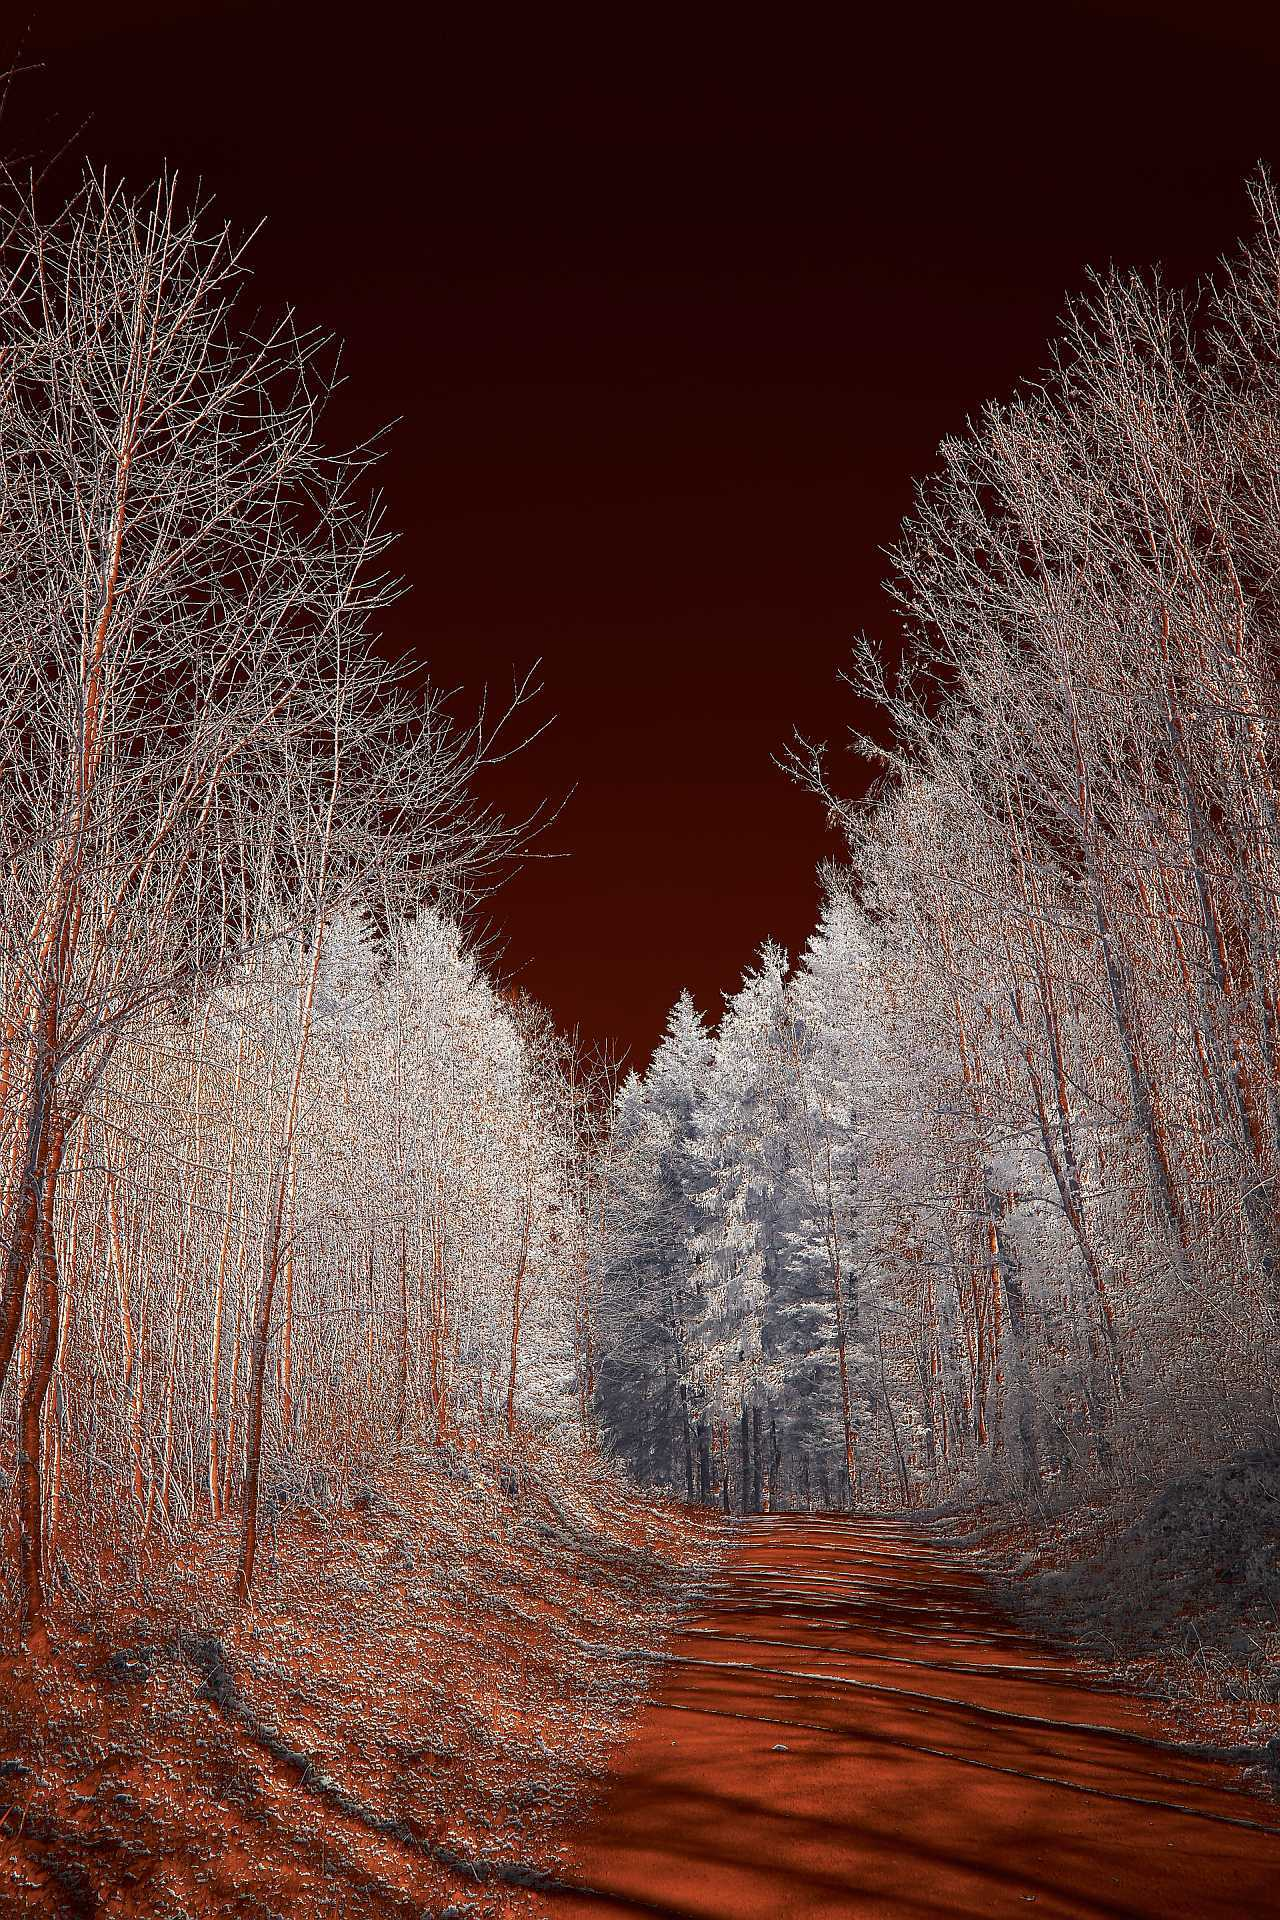 Infrared image with forest